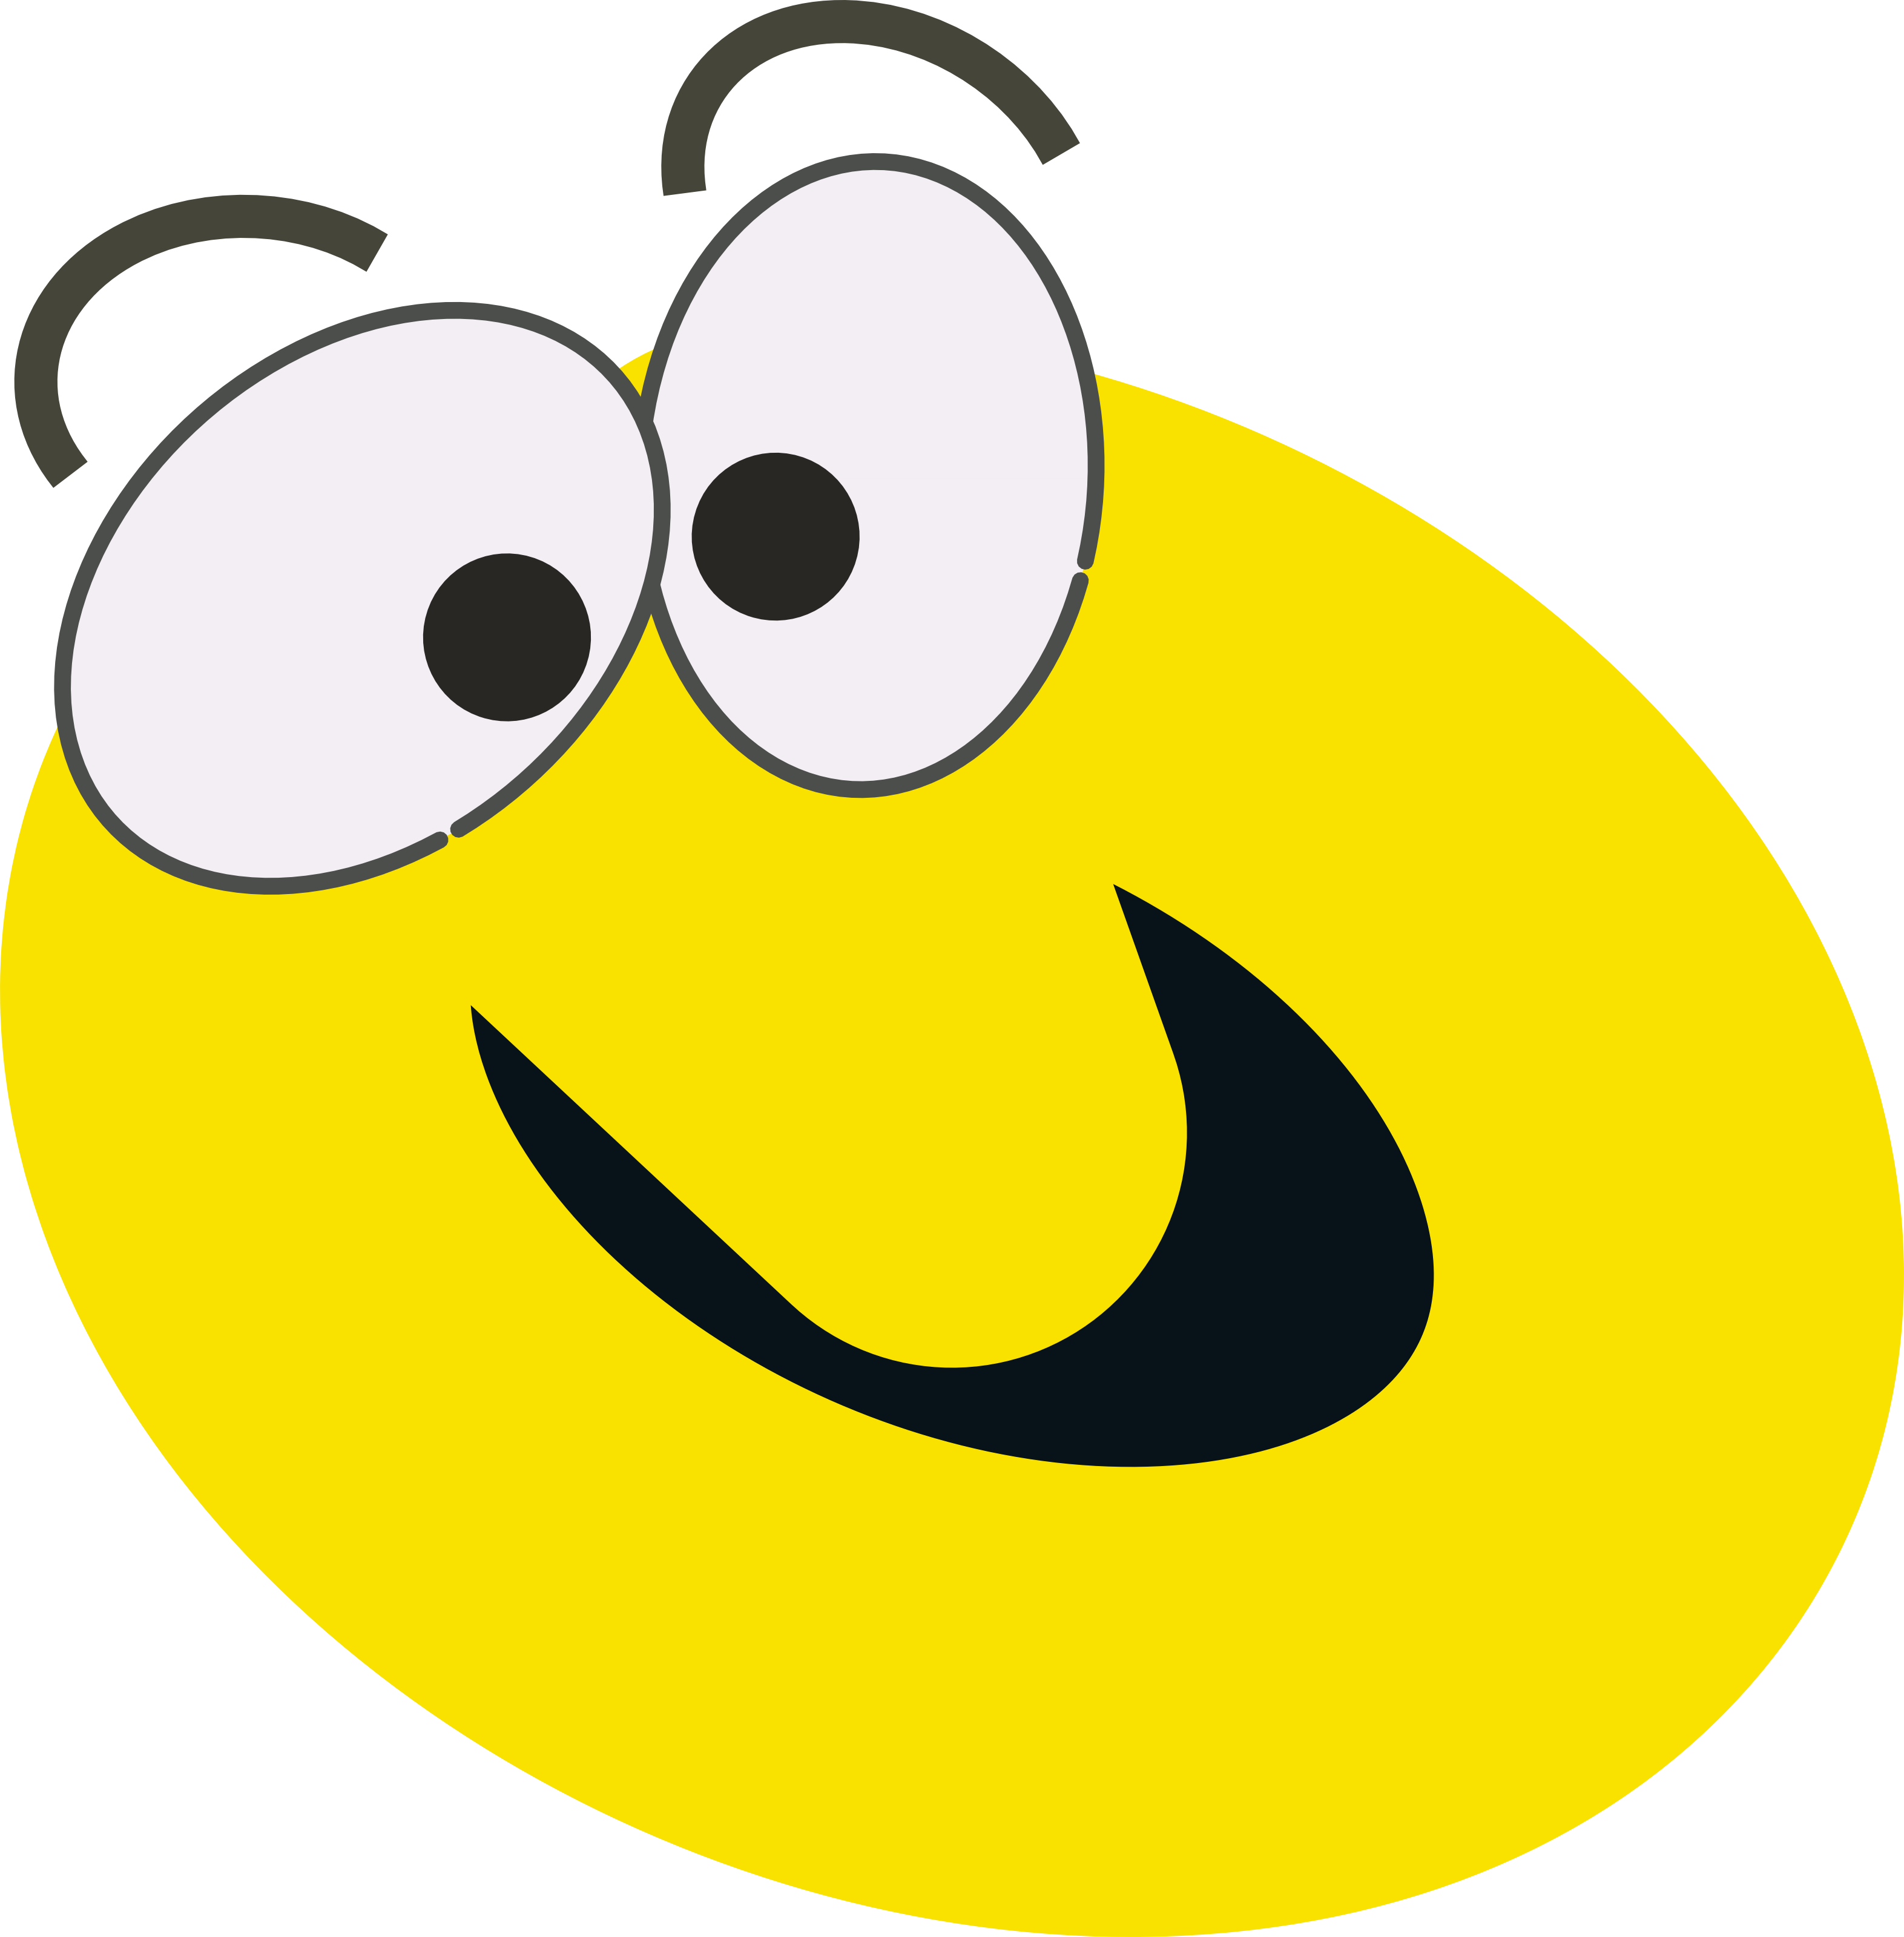 Smiley face happy face clip art free 3 clipartcow